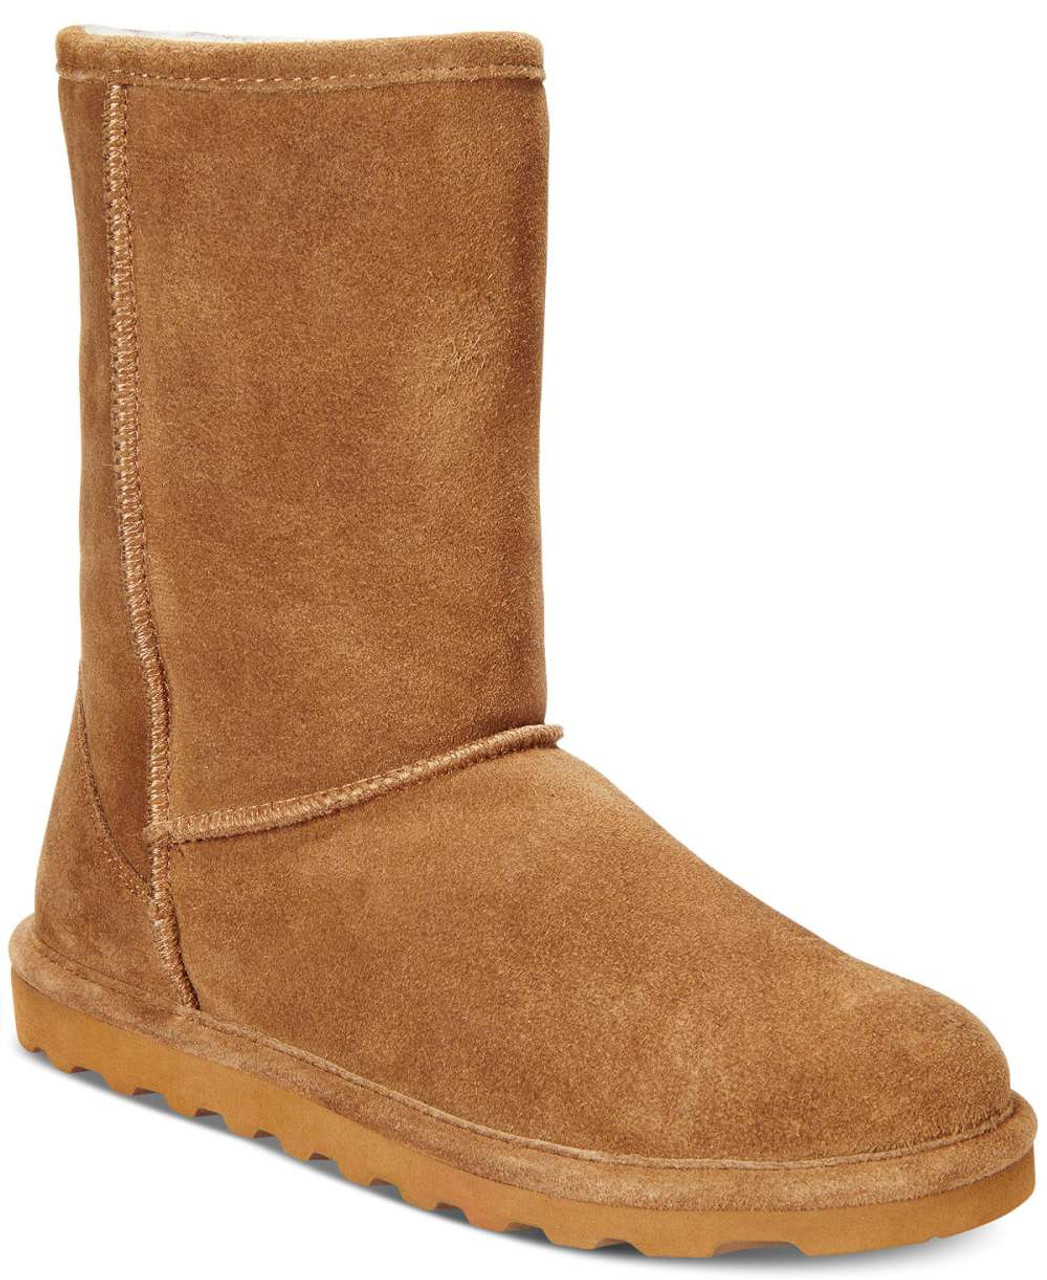 f50119dba Bearpaw Womens Elle Closed Toe Mid-Calf Cold Weather Boots~pp ...